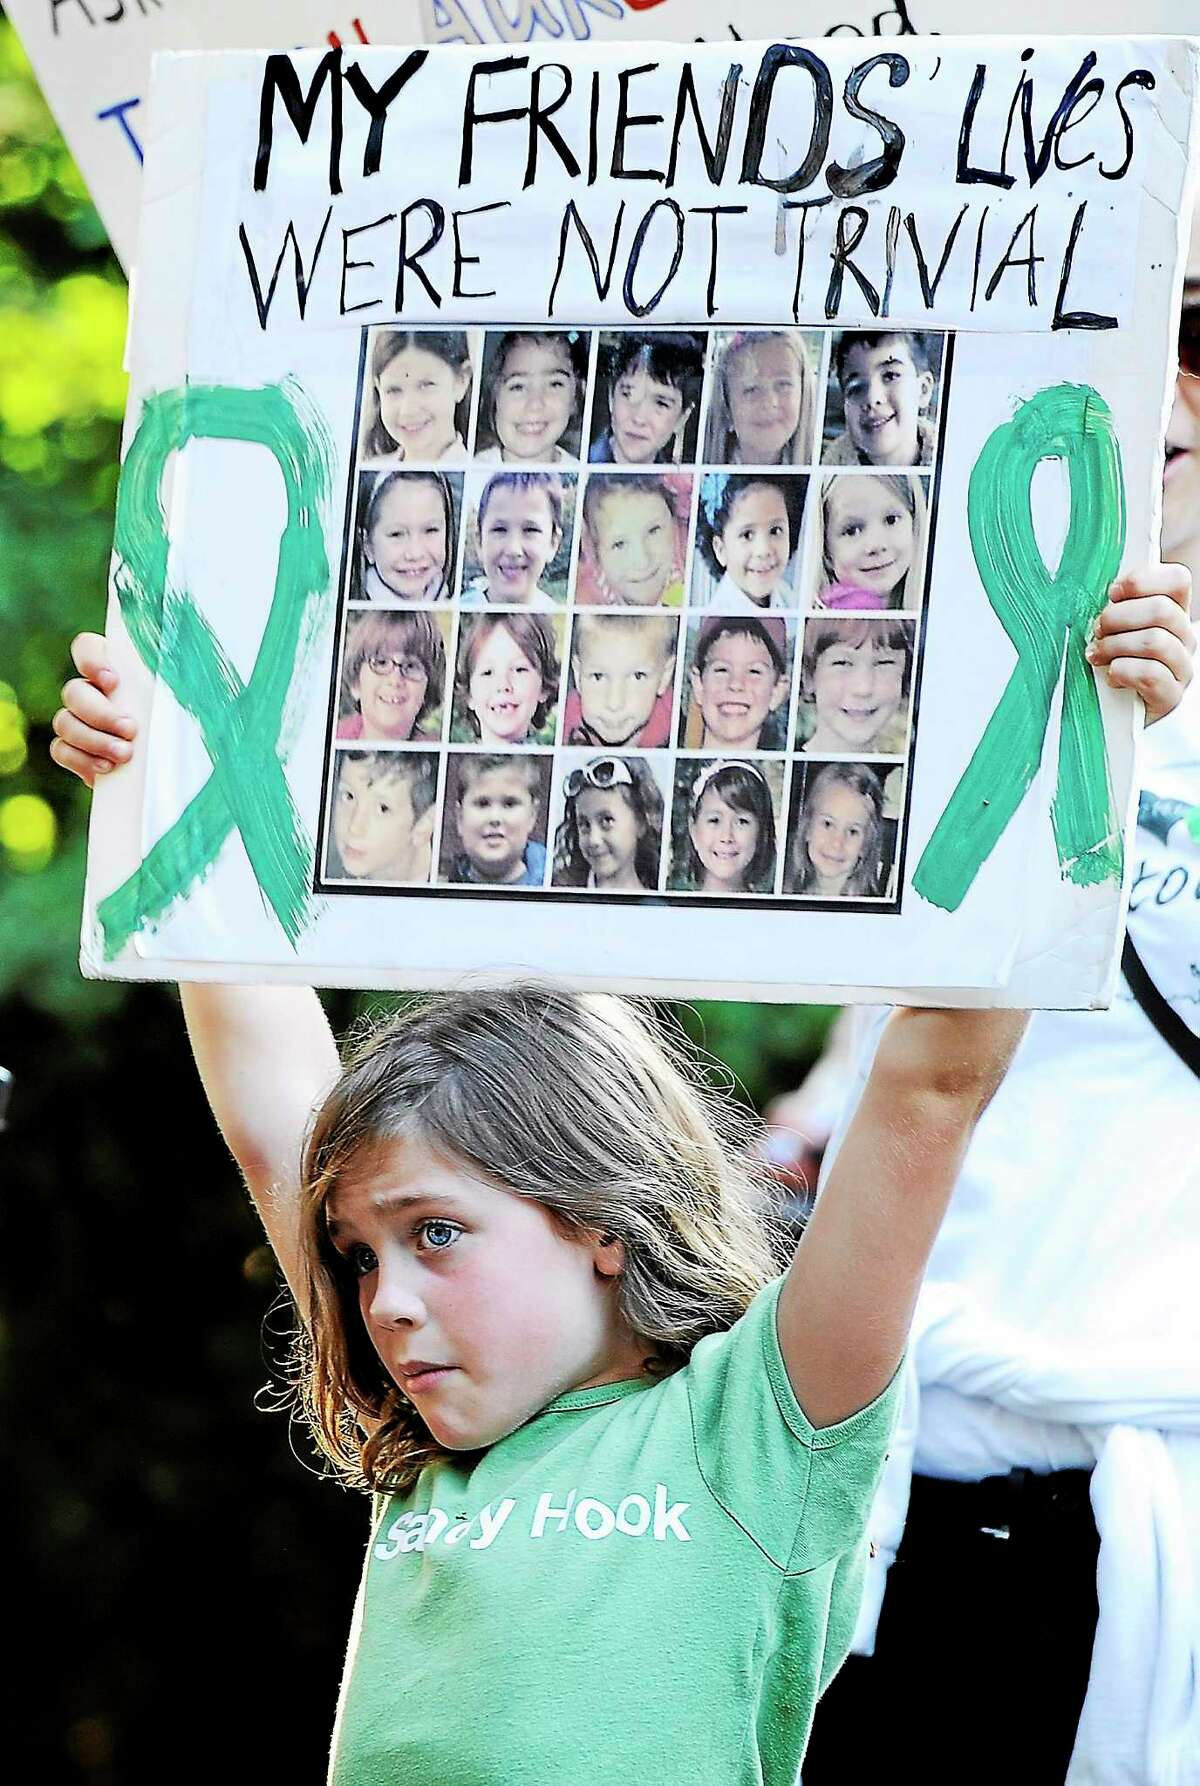 Marie Morosky, of Newtown, Conn. holds up a sign with images of the children killed in the Sandy Hook School shooting.